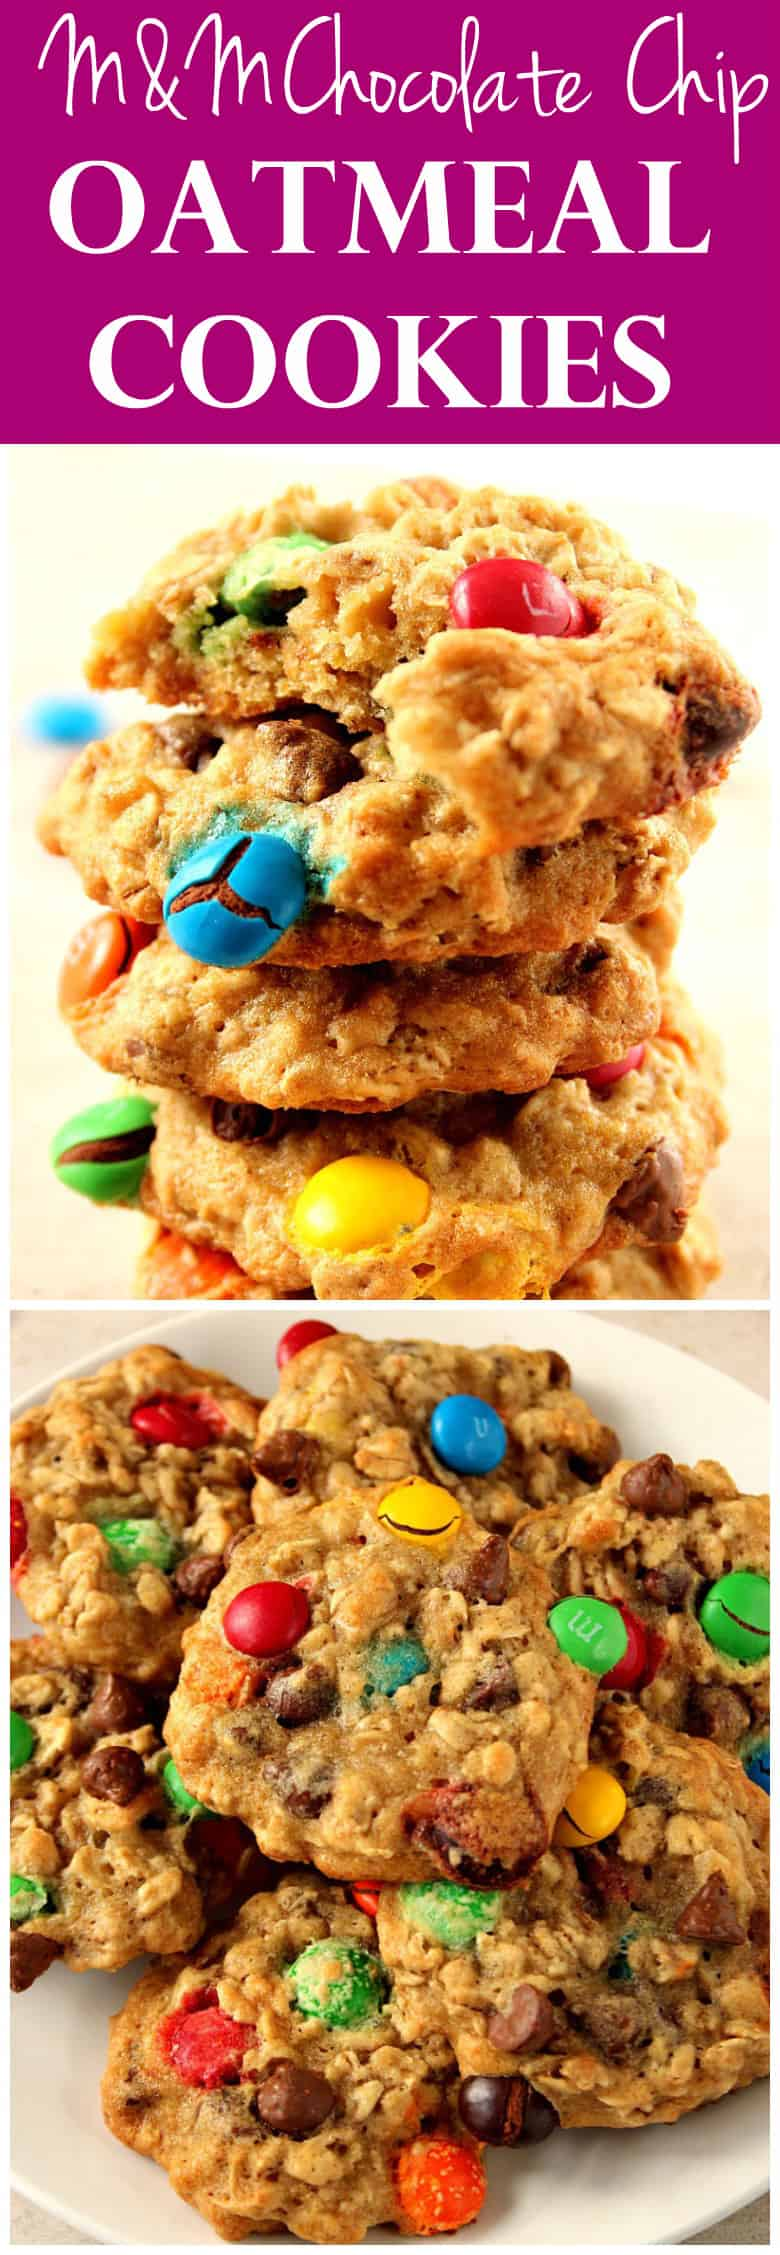 how to make soft m&m cookies